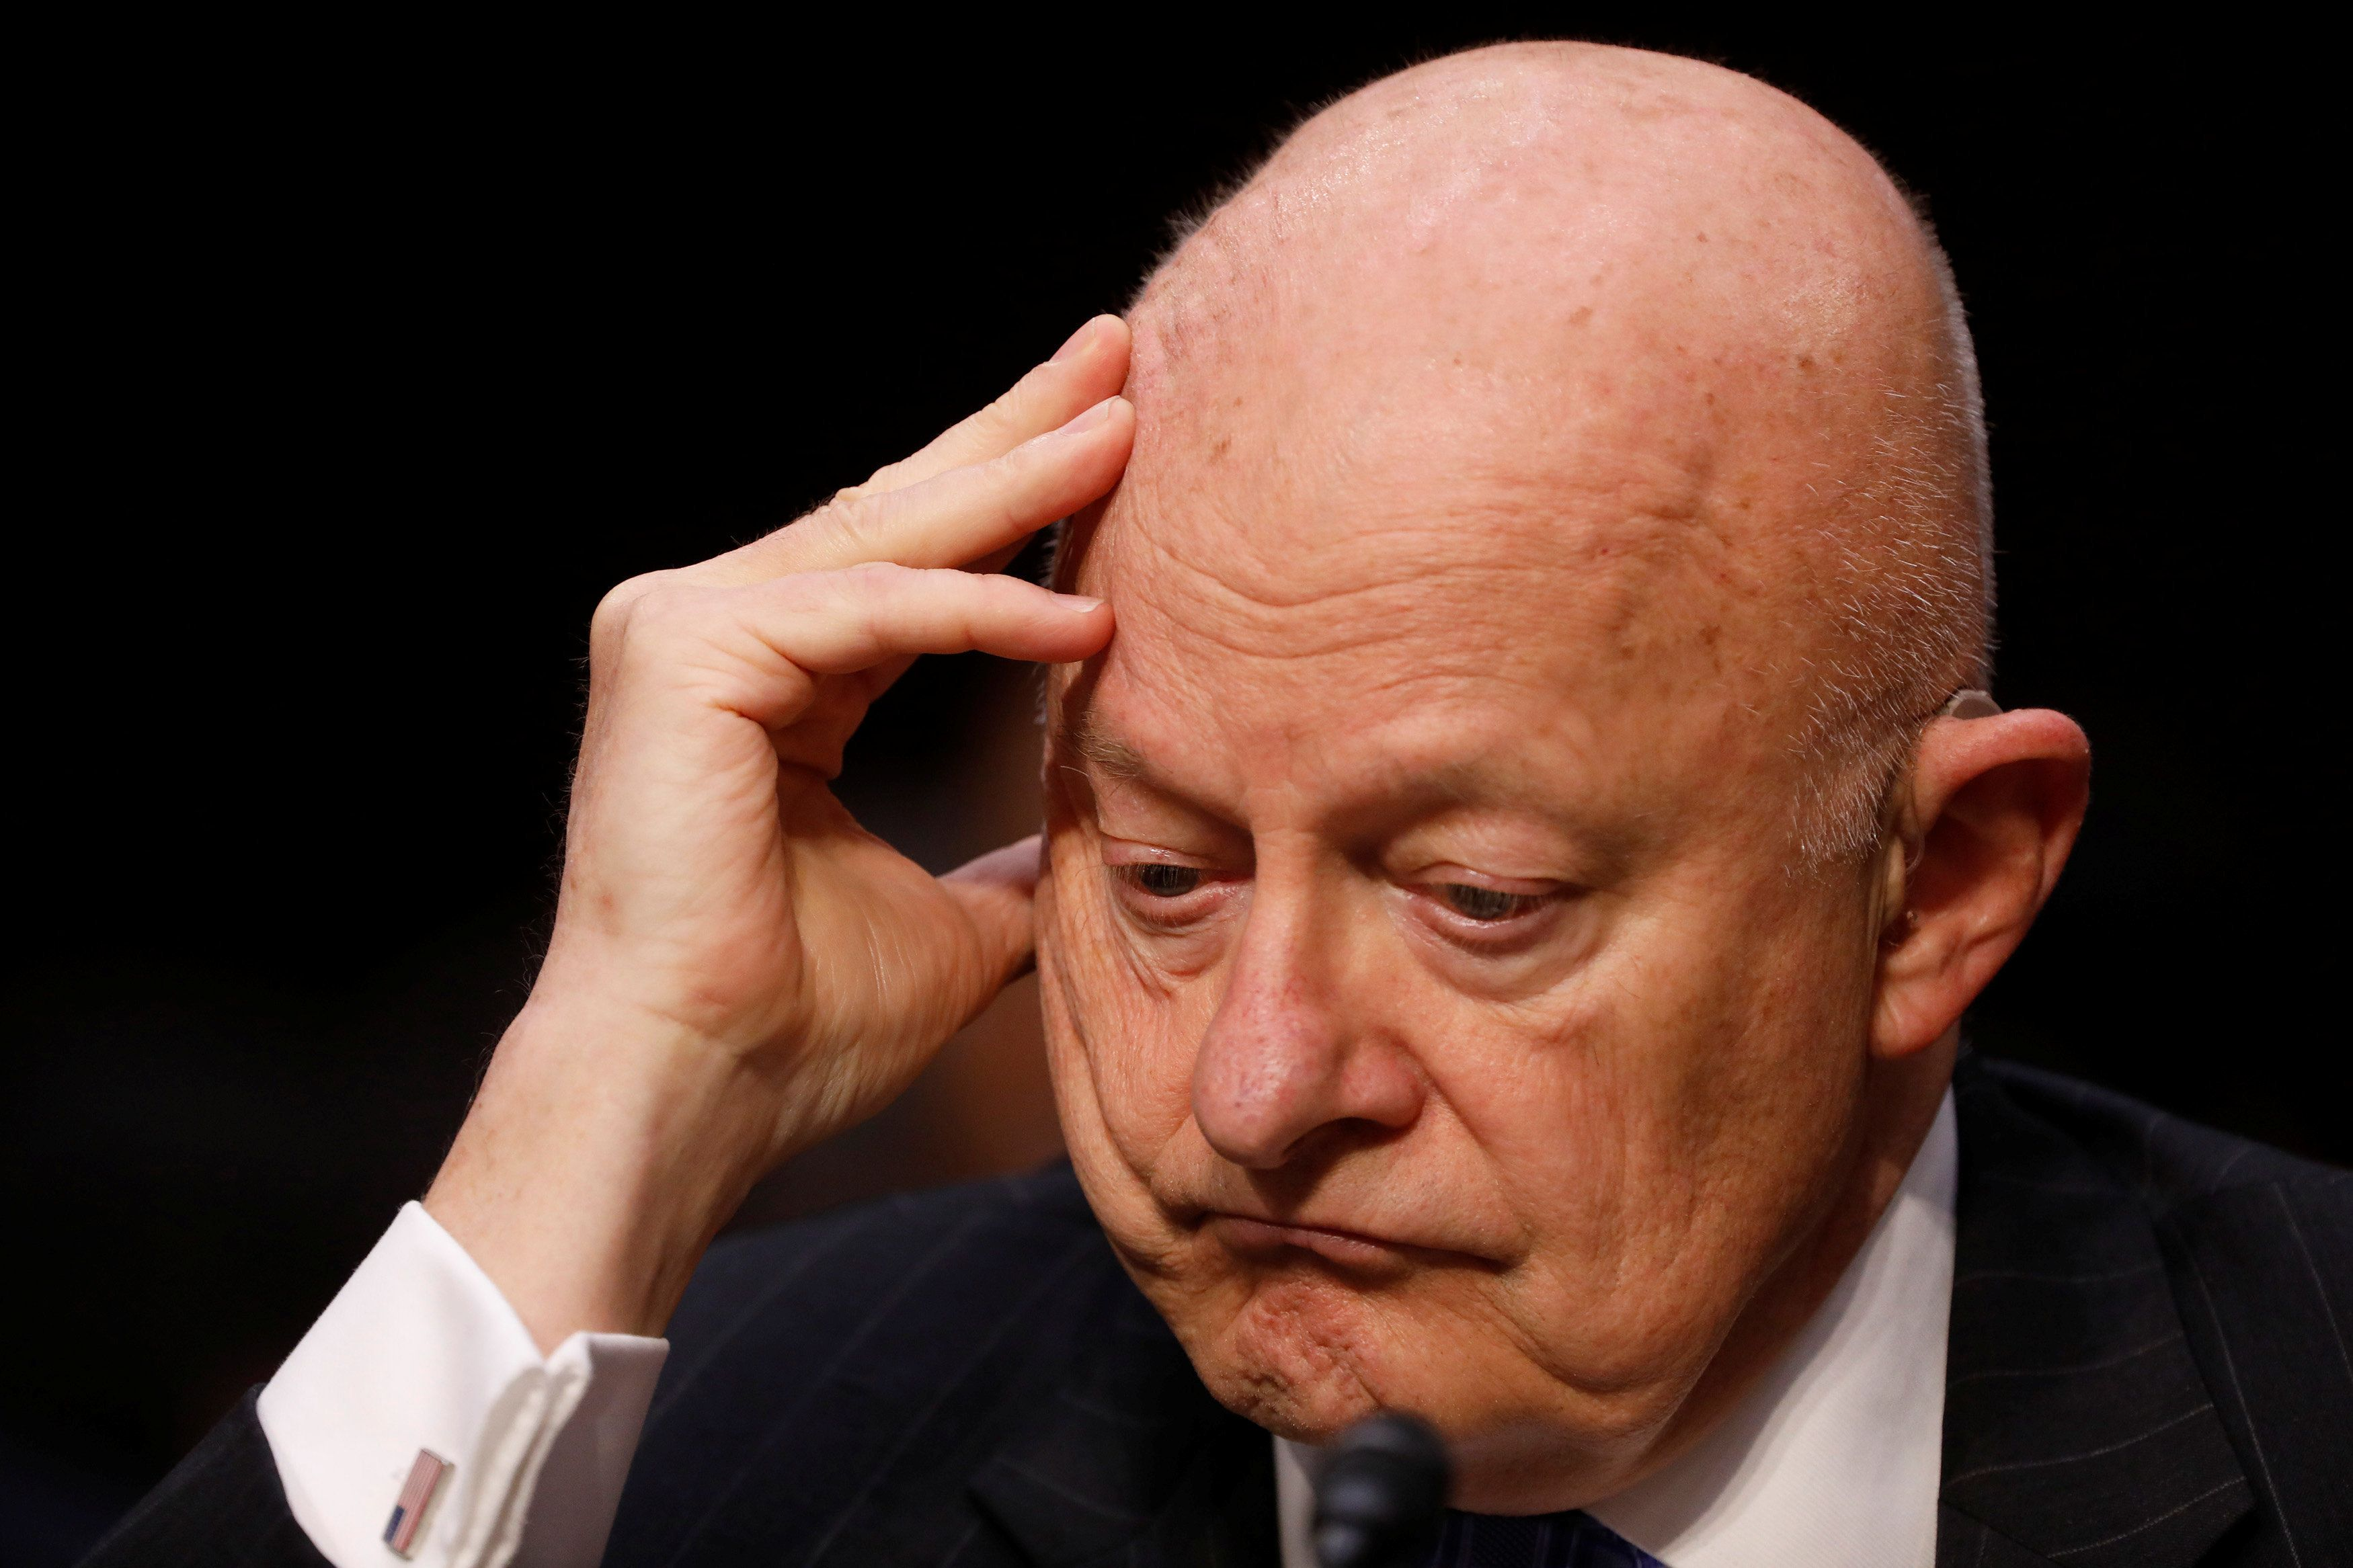 Former Director of National Intelligence James Clapper testifies about potential Russian interference in the presidential election before the Senate Judiciary Committee on Capitol Hill, Washington, D.C., U.S. May 8, 2017.  REUTERS/Aaron P. Bernstein